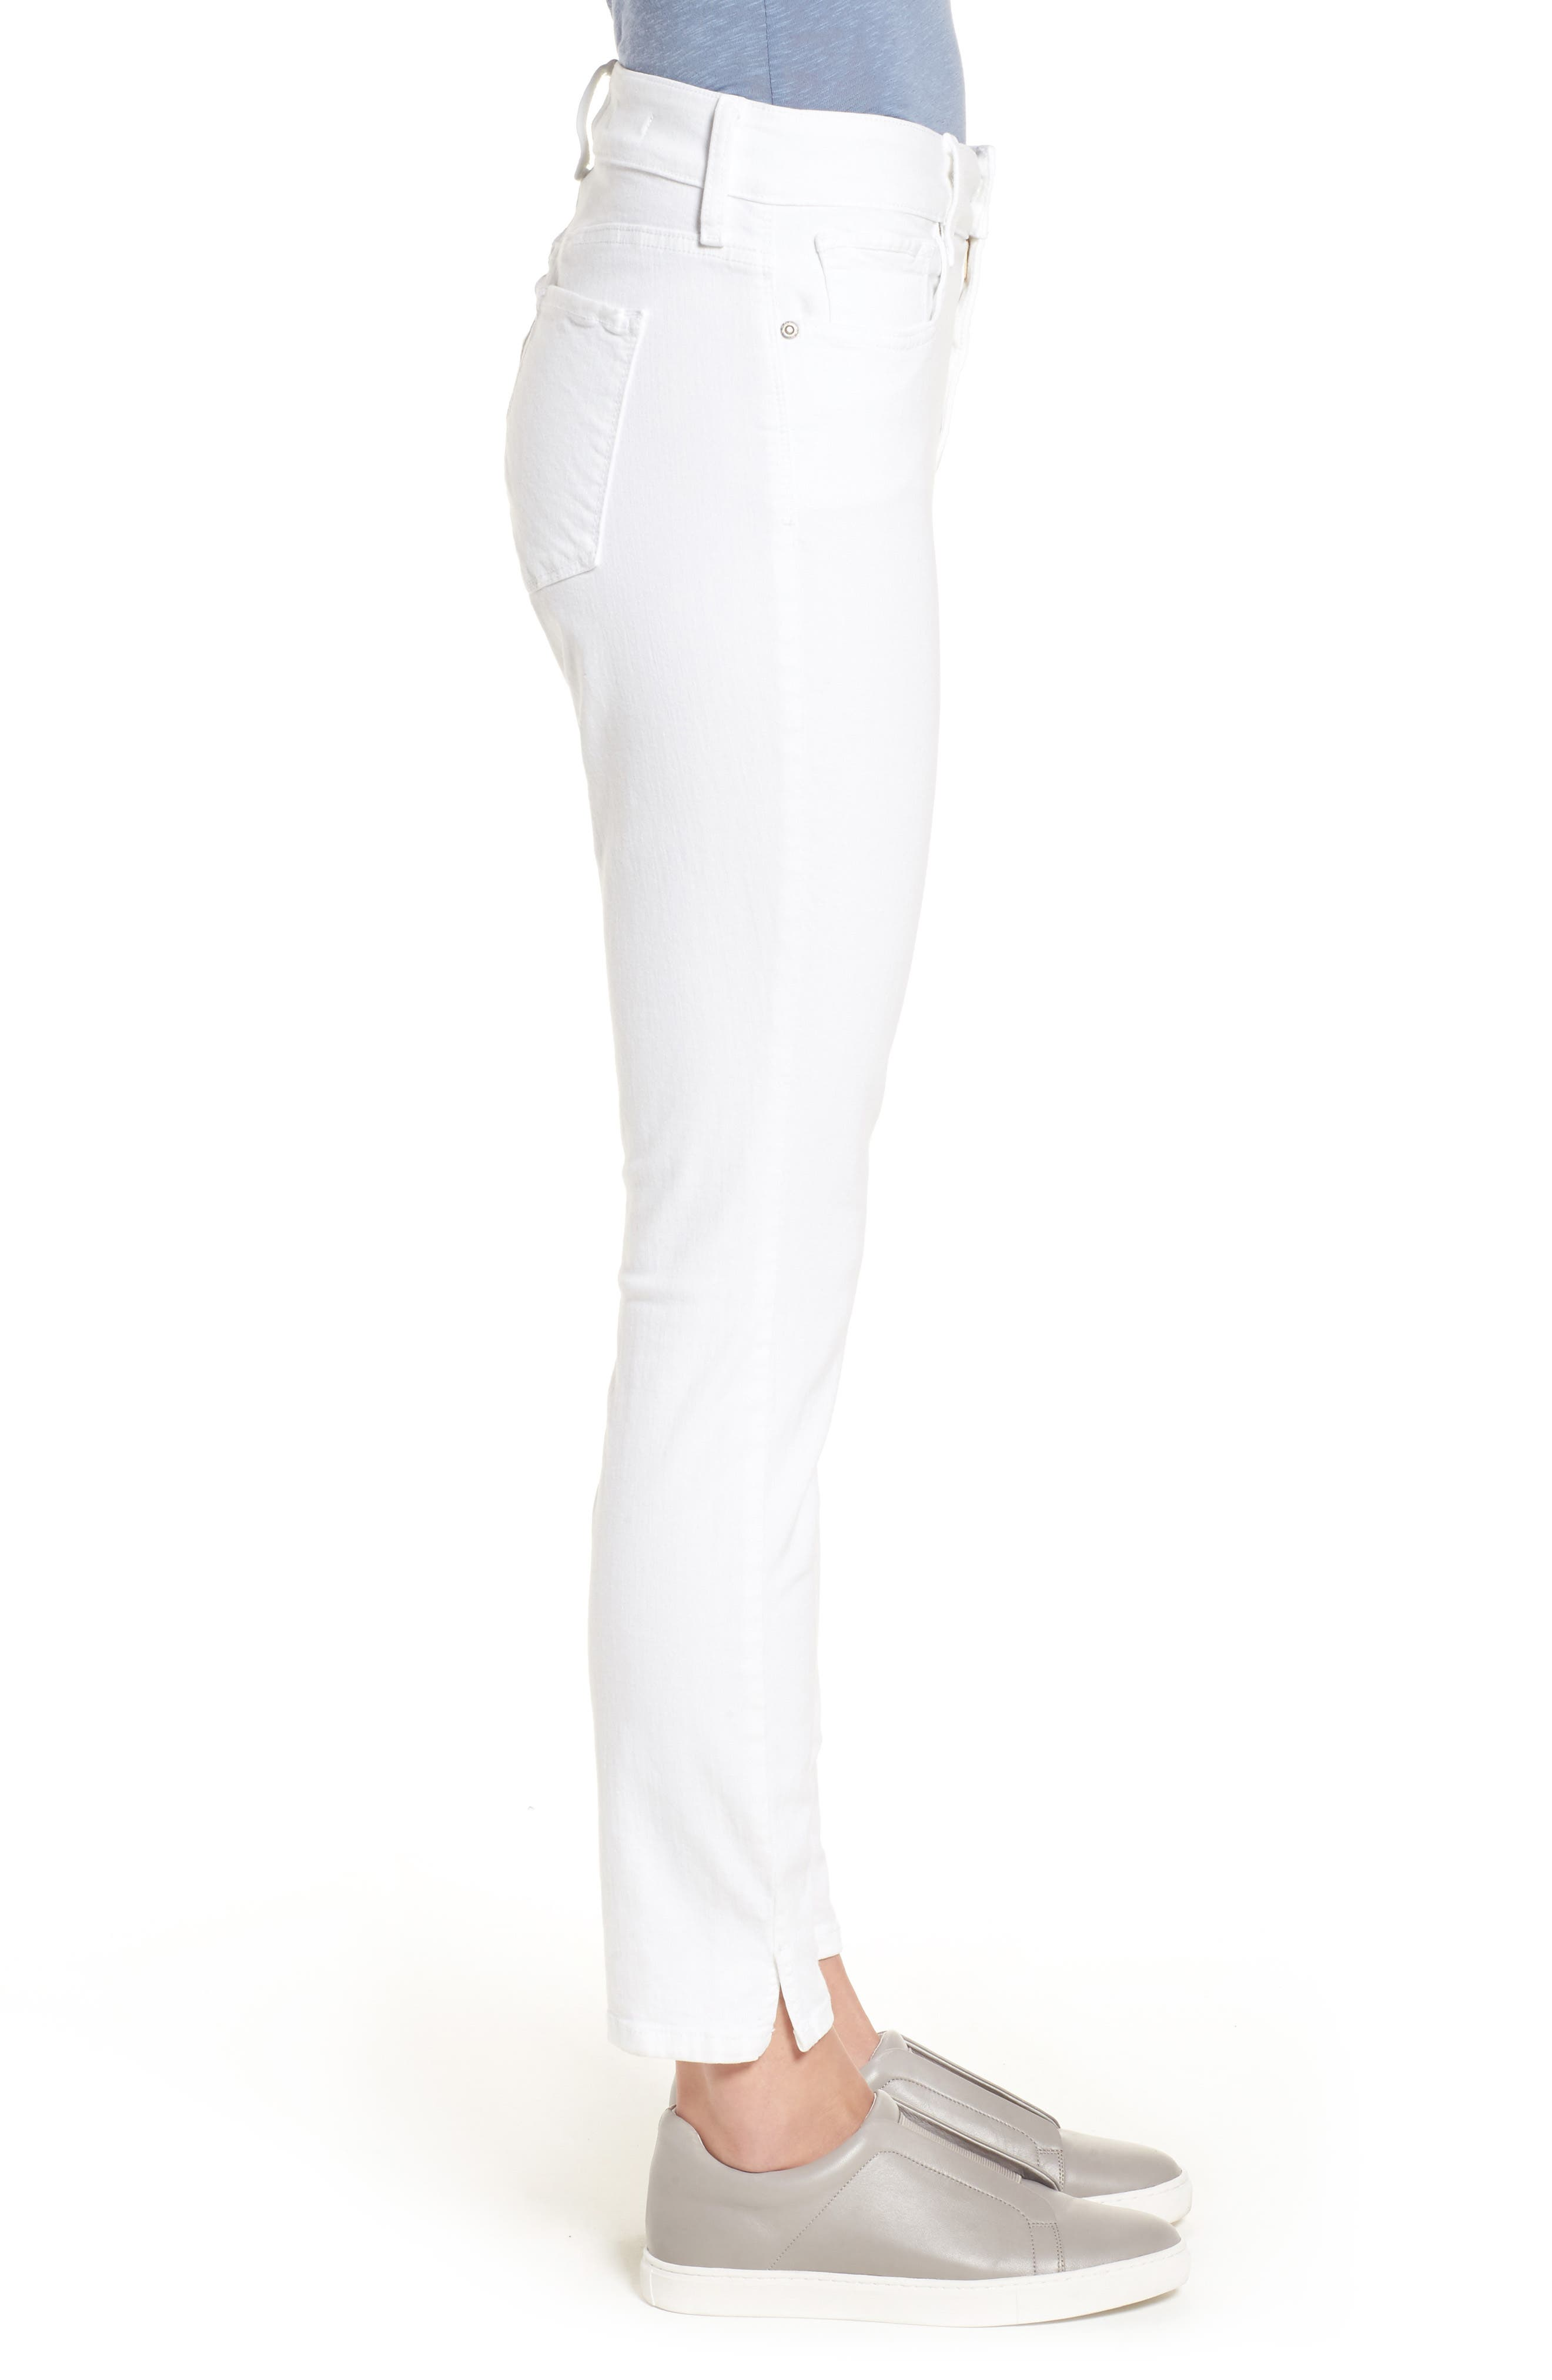 Ami Stretch Ankle Skinny Jeans,                             Alternate thumbnail 3, color,                             Optic White